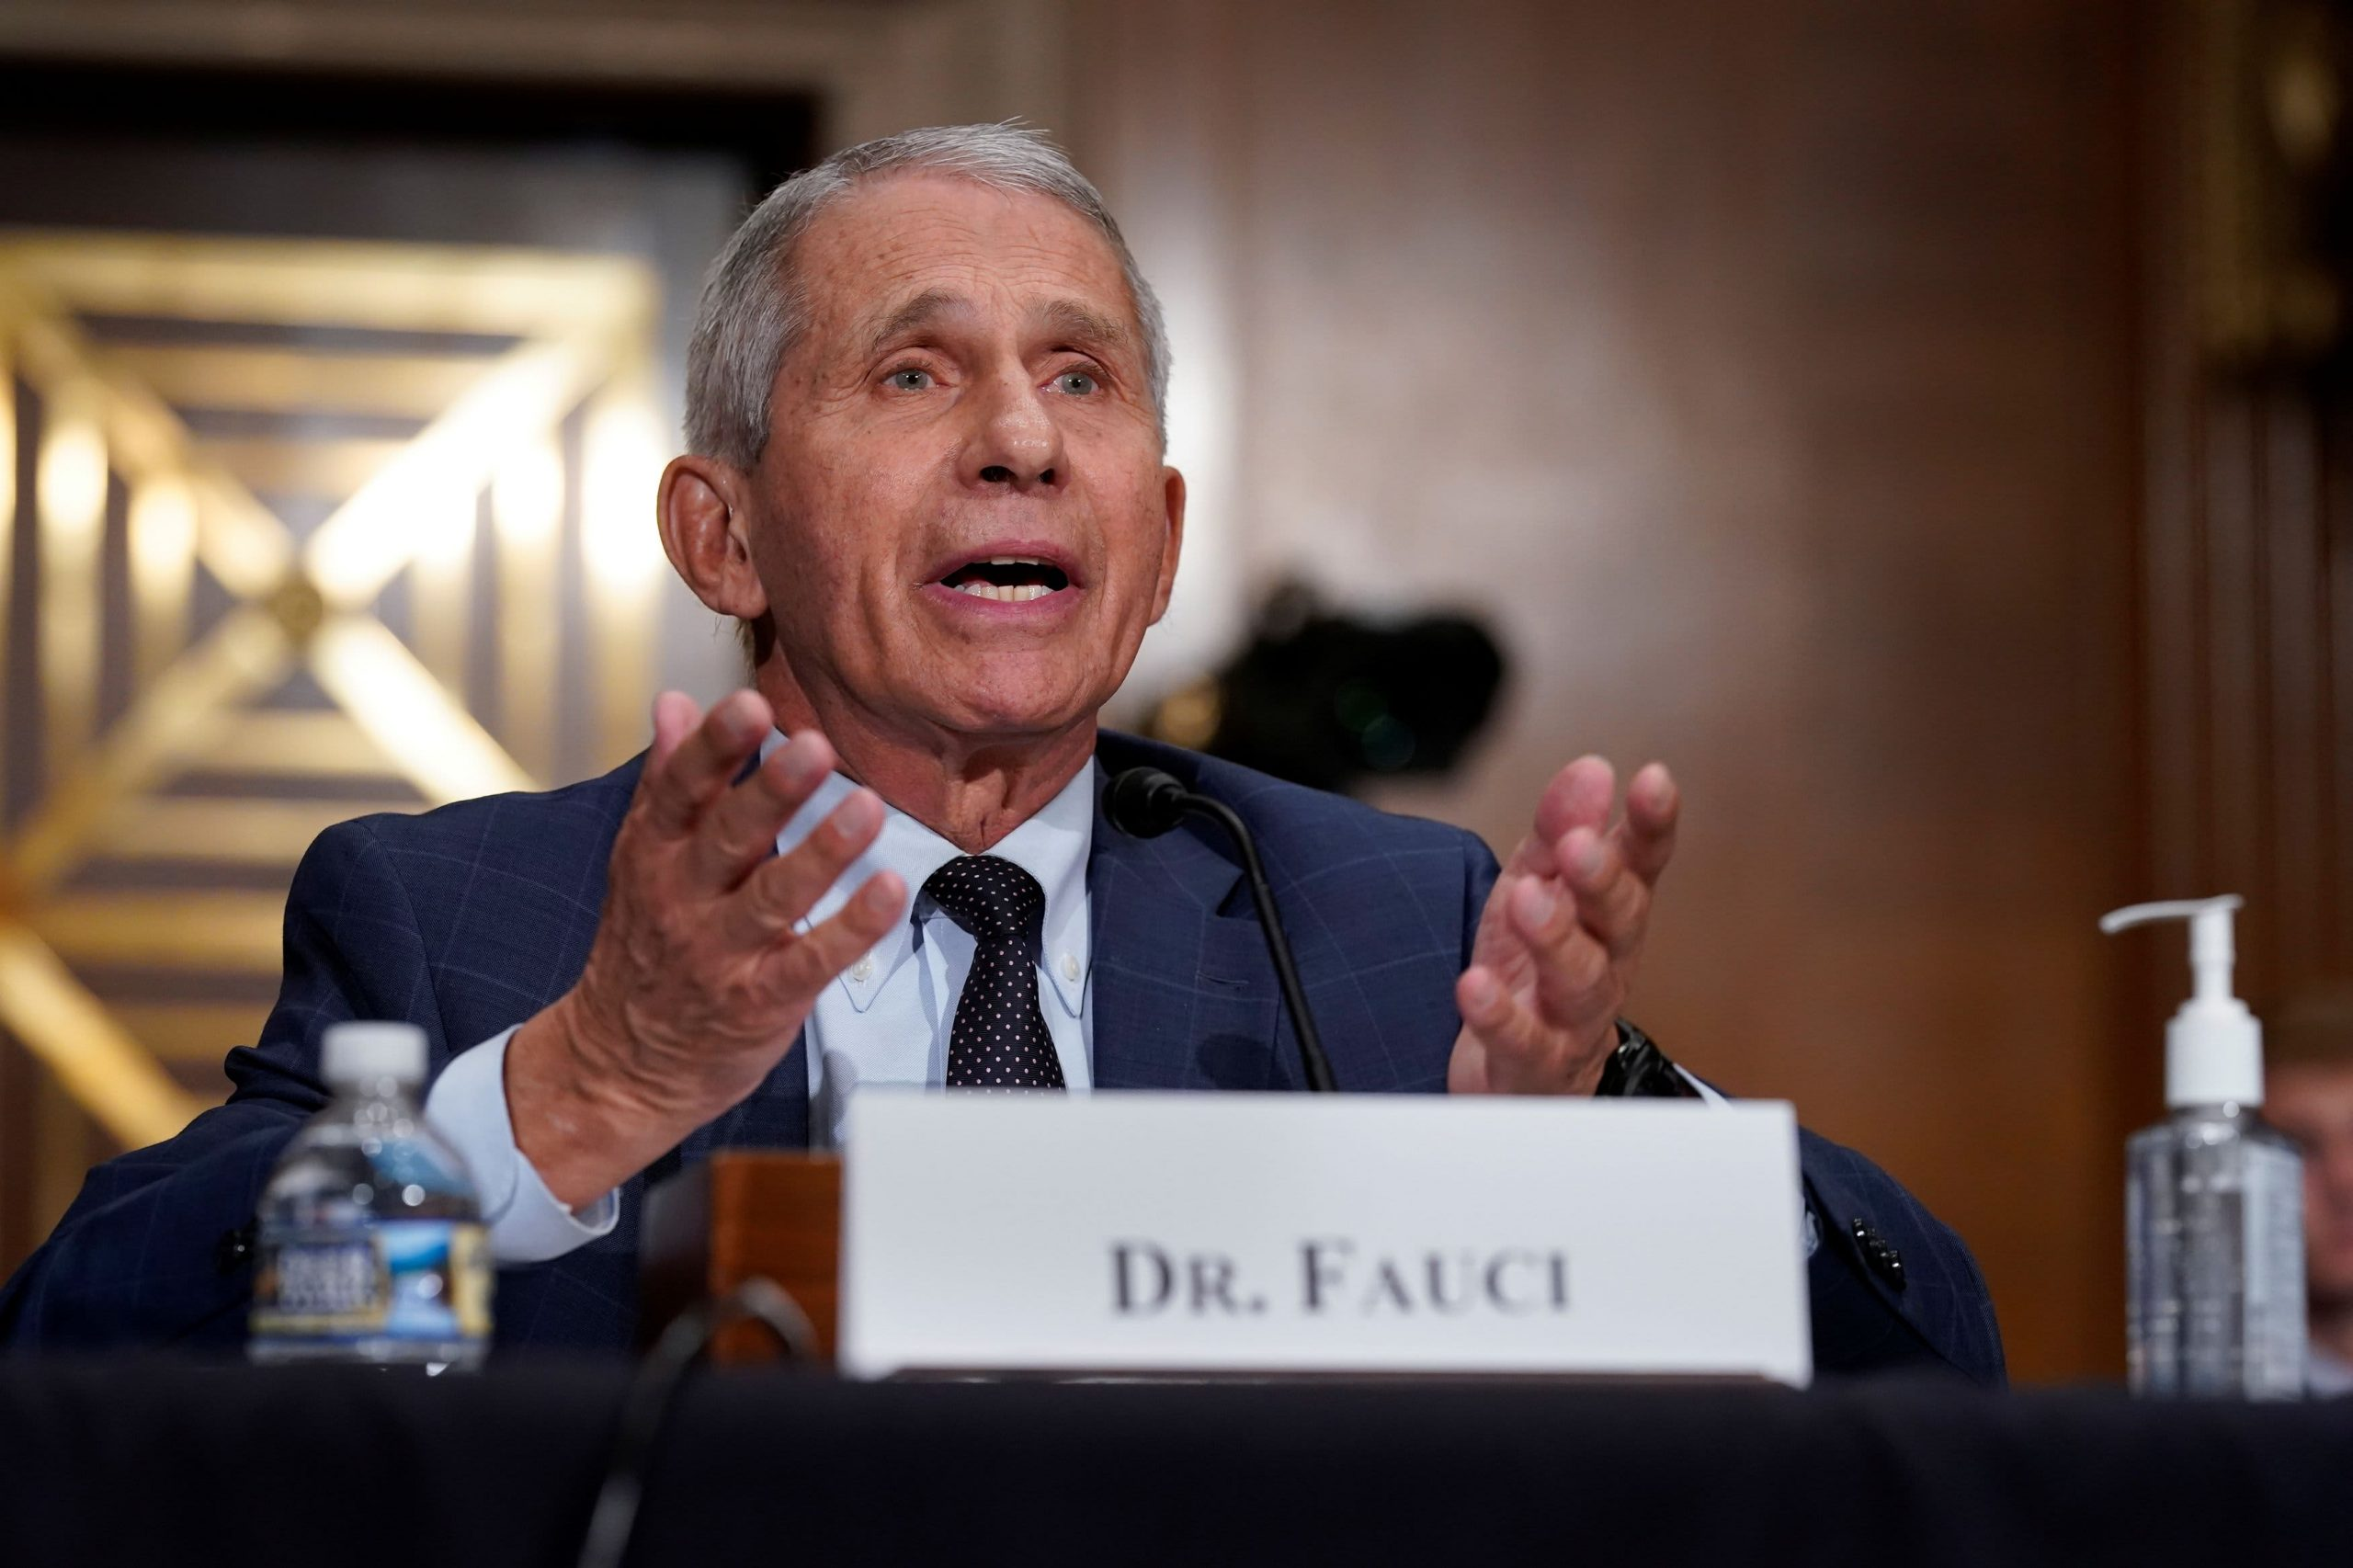 Pfizer Covid booster shots will likely be ready Sept. 20, but Moderna may be delayed, Fauci says